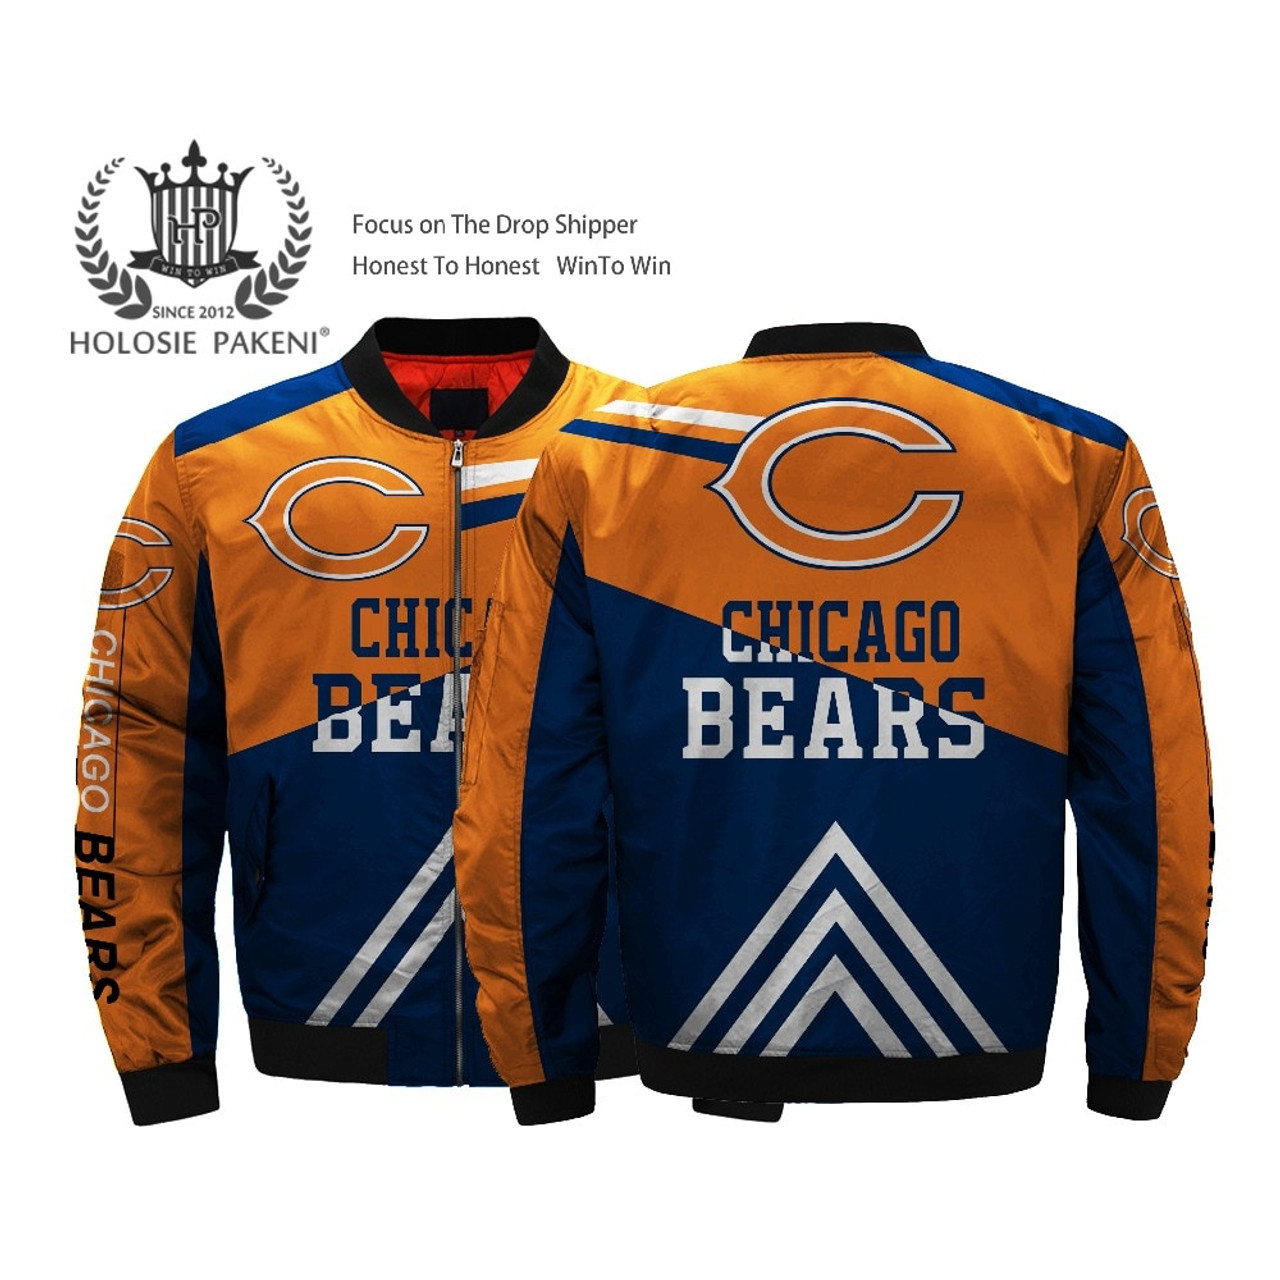 brand new 61168 93eb9 **(OFFICIALLY-LICENSED-N.F.L.CHICAGO-BEARS-JACKETS/CLASSIC-BEARS-TEAM-COLORS  & OFFICIAL-BEARS-LOGOS,BOMBER/MA-1 ...